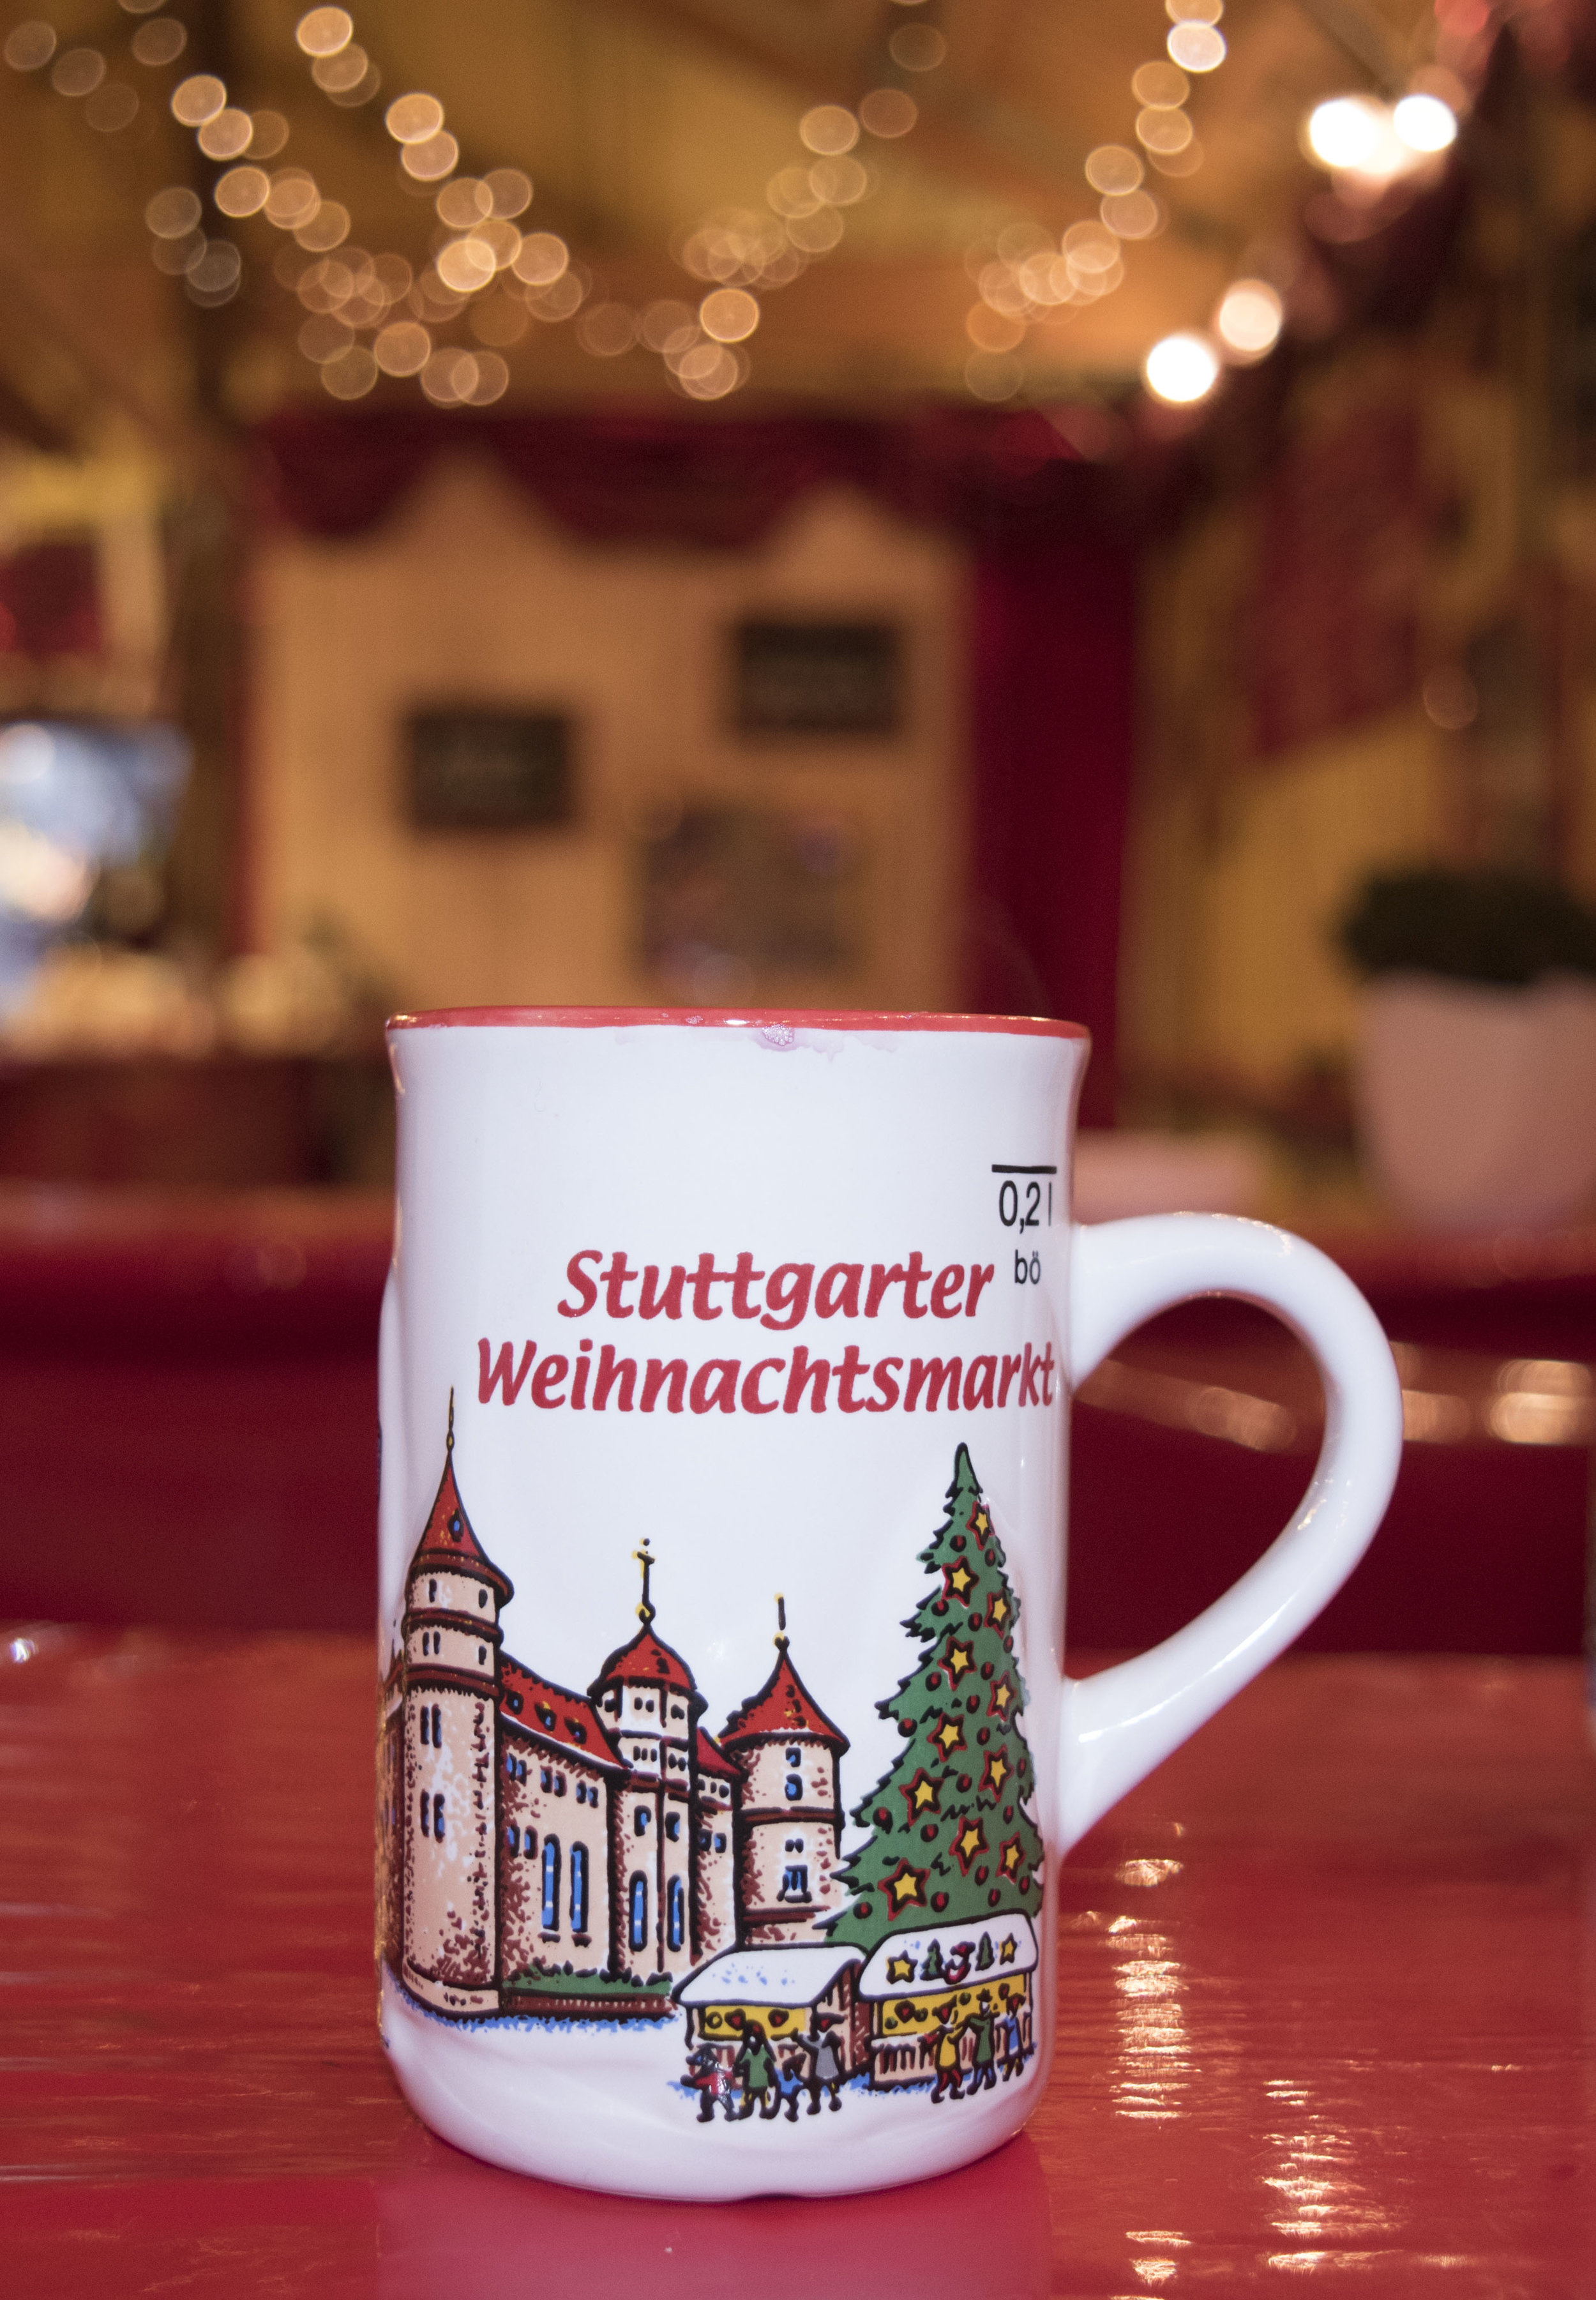 Attendees are often found drinking glühwein (mulled wine) at the Christmas Market in Stuttgart, Germany. Return the mug to the vendor if you wish to receive your deposit back, or keep it as a souvenir.